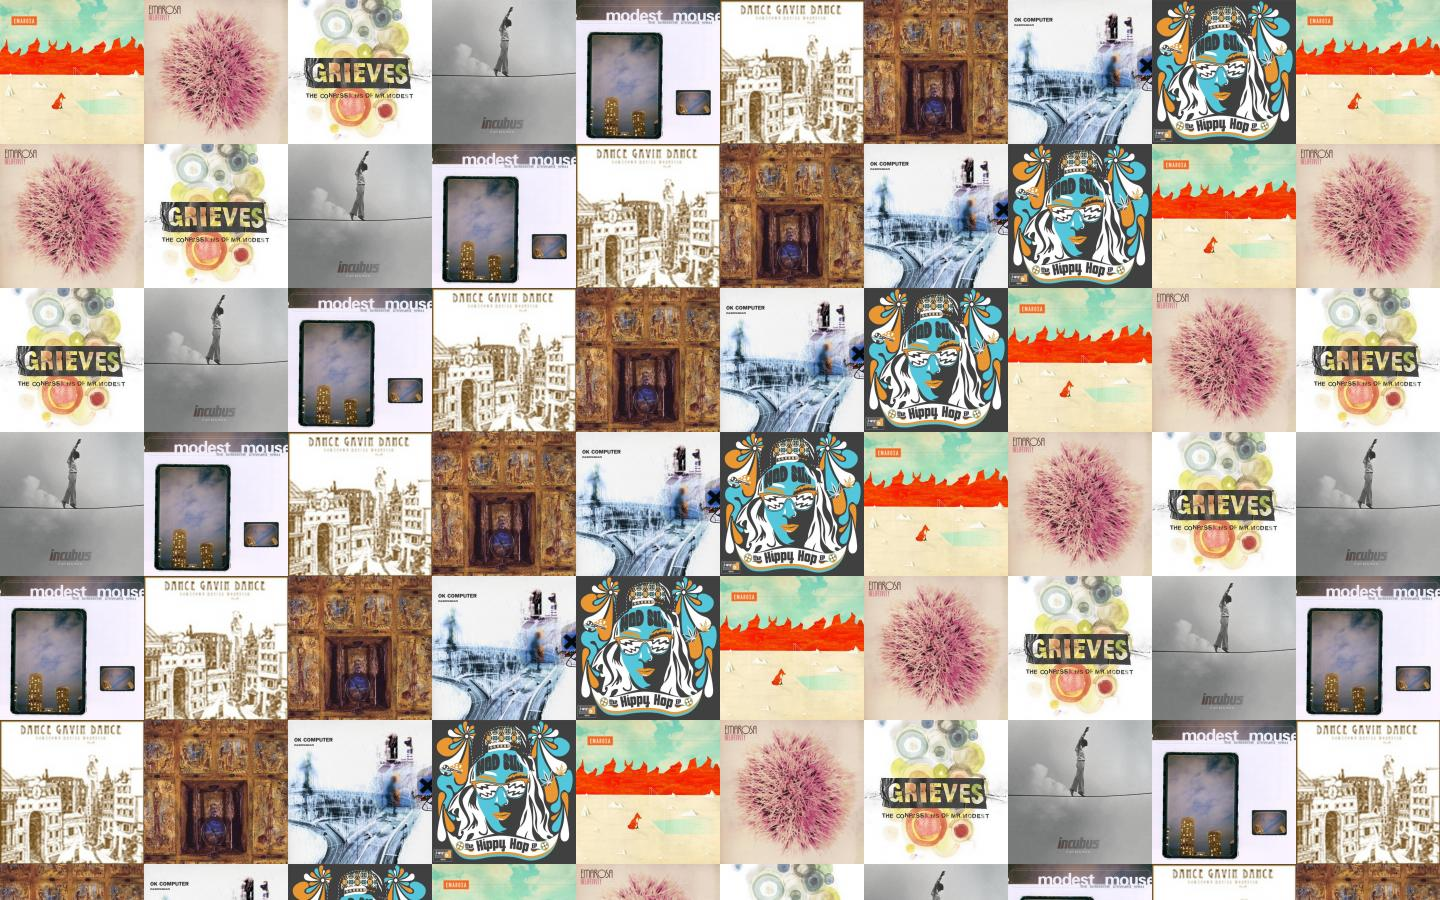 Emarosa Self Titled Relativity Grieves Confessions Mr